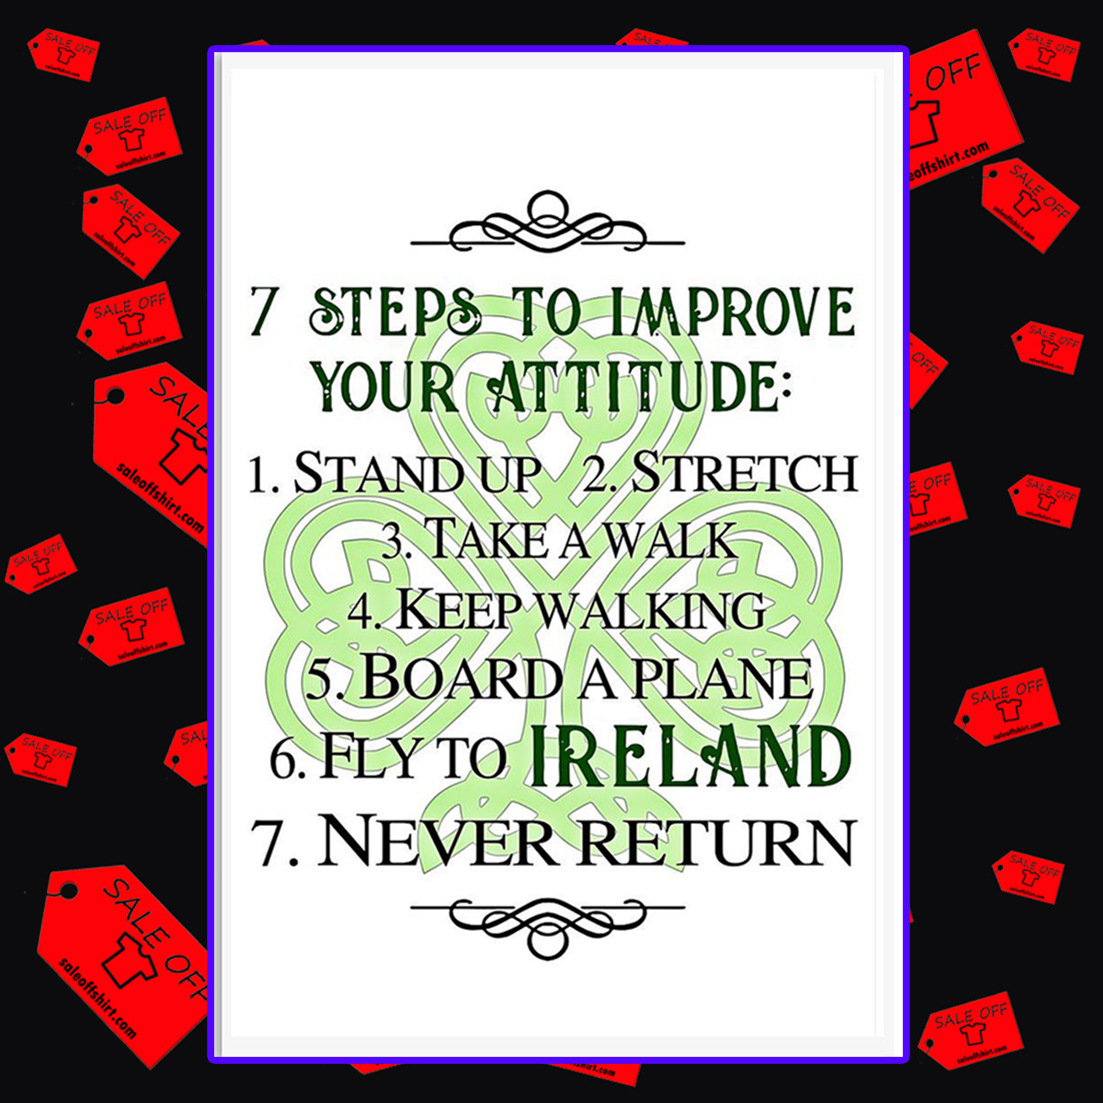 7 steps to improve your attitude poster